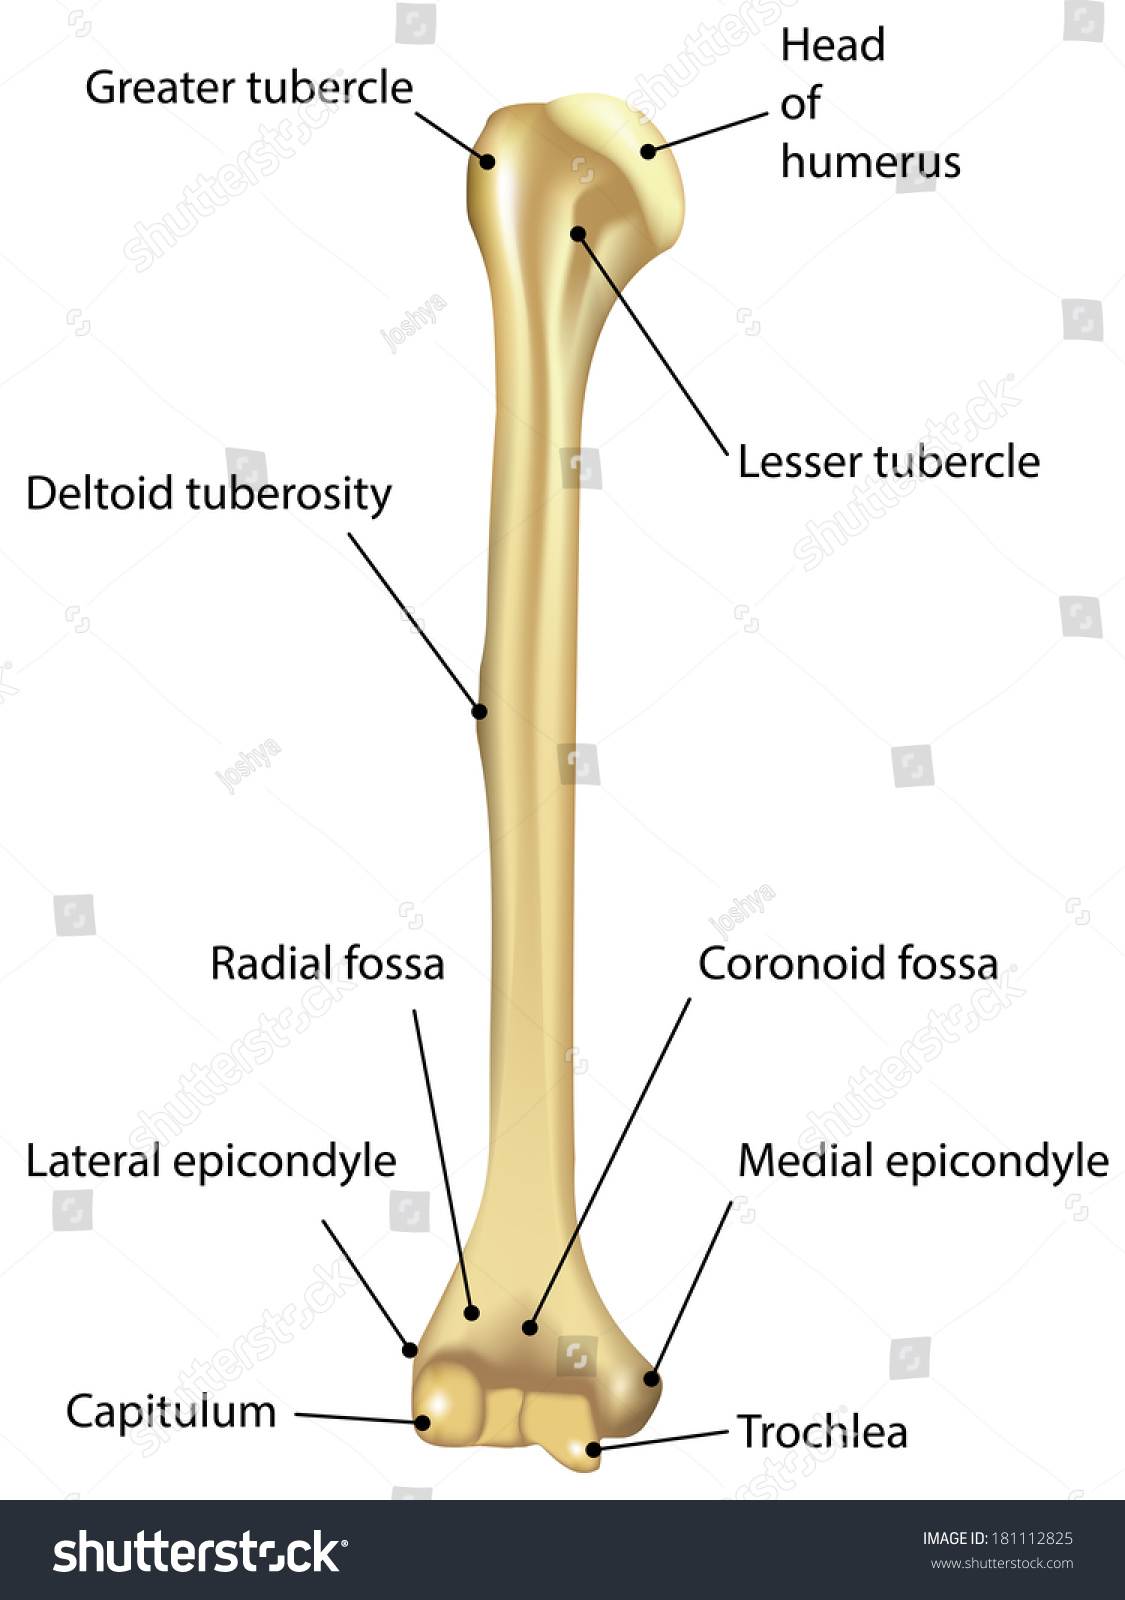 Humerus Diagram Labeled